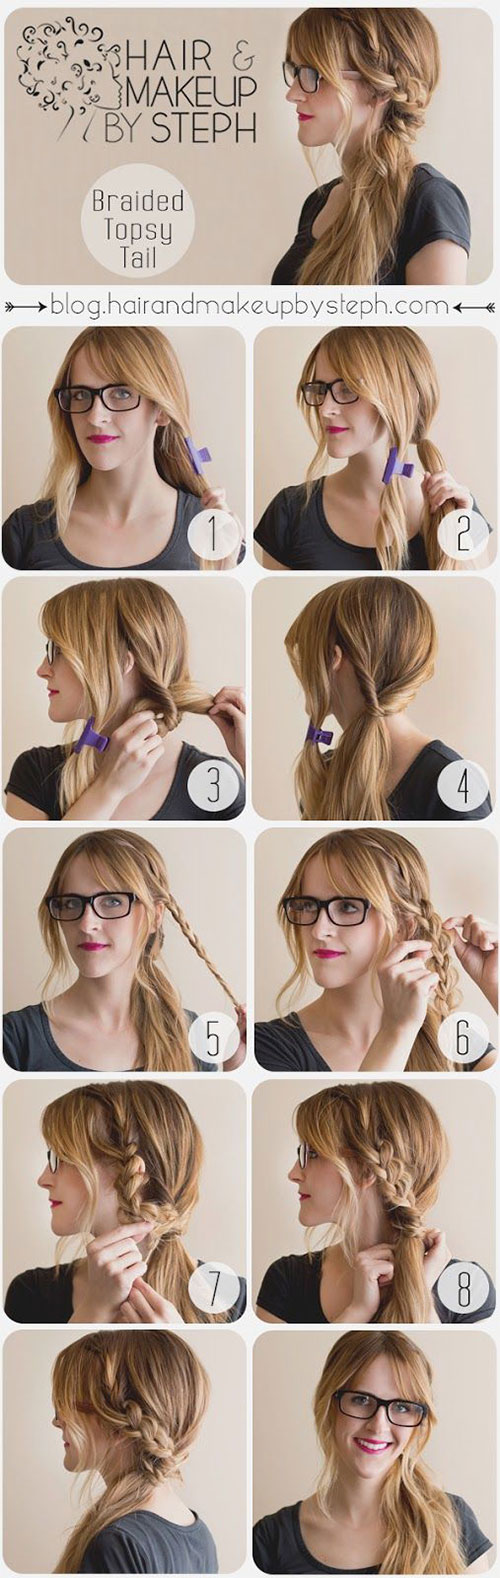 Pleasing 20 Easy Step By Step Summer Braids Style Tutorials For Beginners Short Hairstyles Gunalazisus